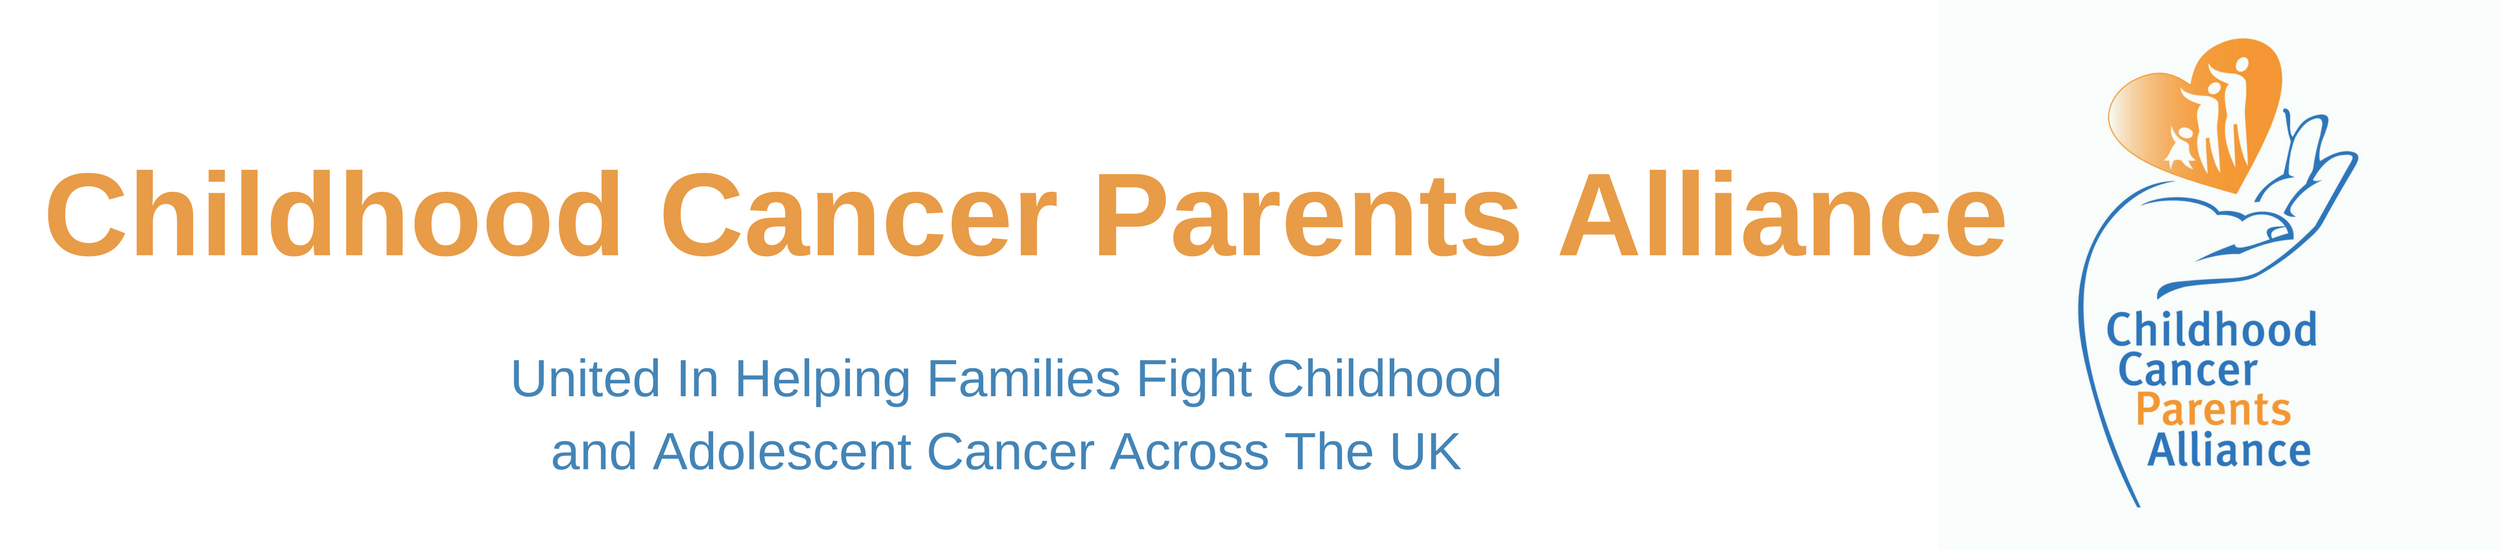 CCPA Childhood Cancer Parents Alliance